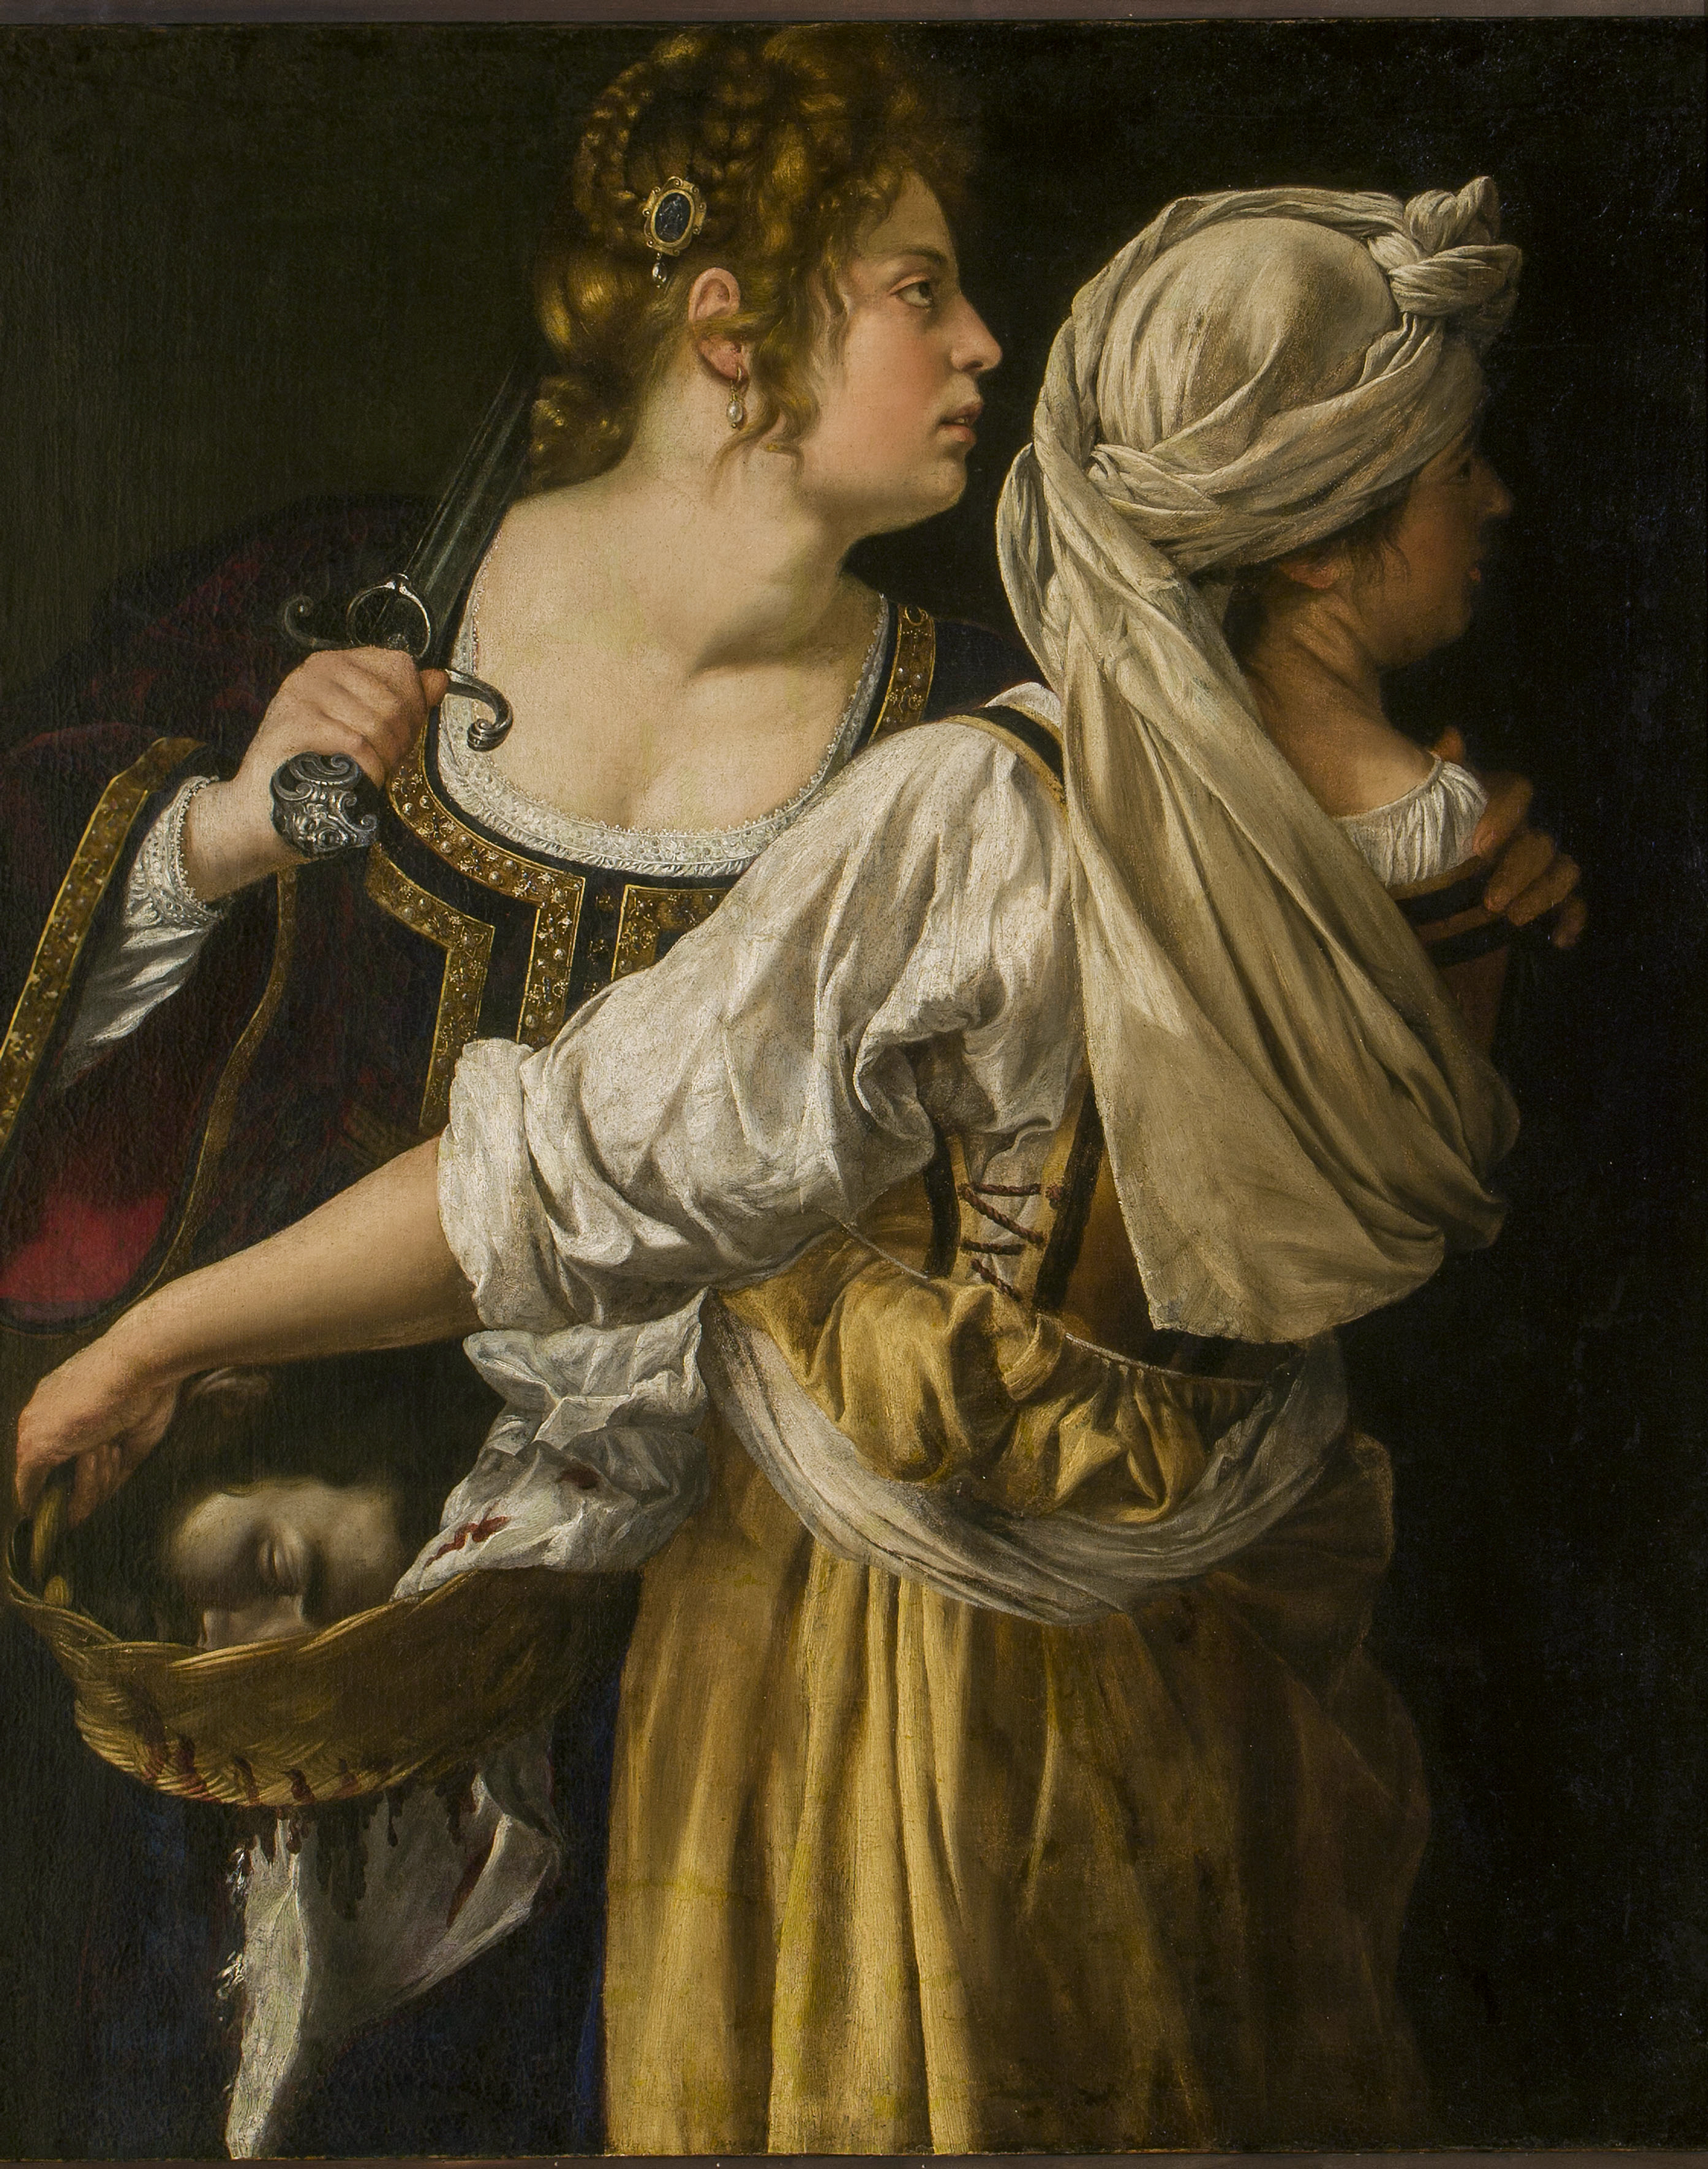 Long Seen As Victim, 17th Century Italian Painter Emerges As Feminist Icon